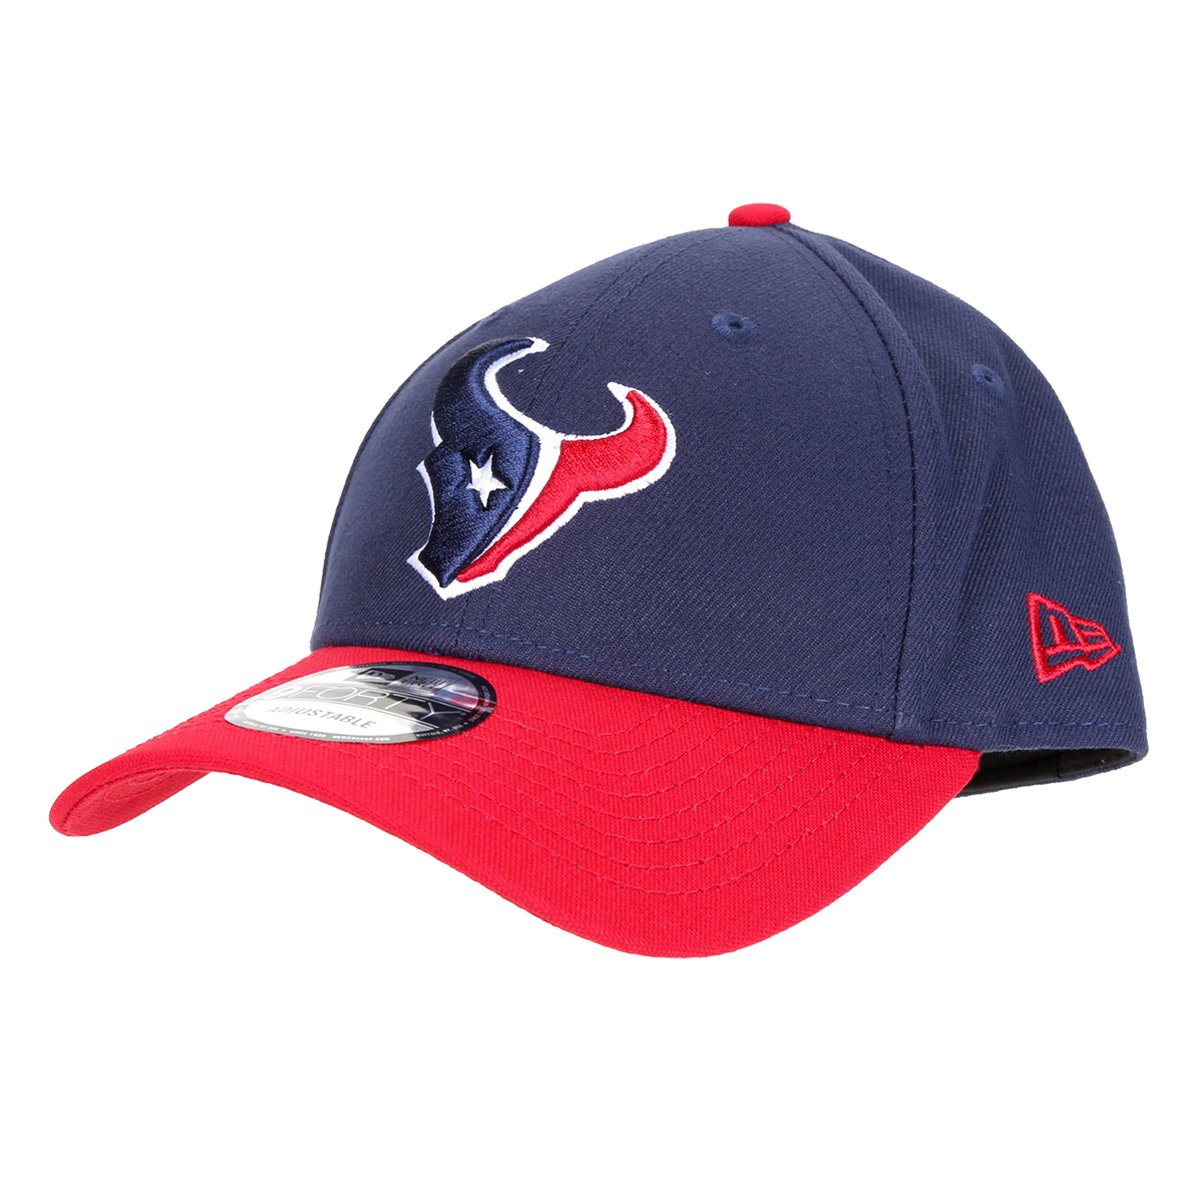 Boné New Era NFL Houston Texans Aba Curva Snapback 940 Team